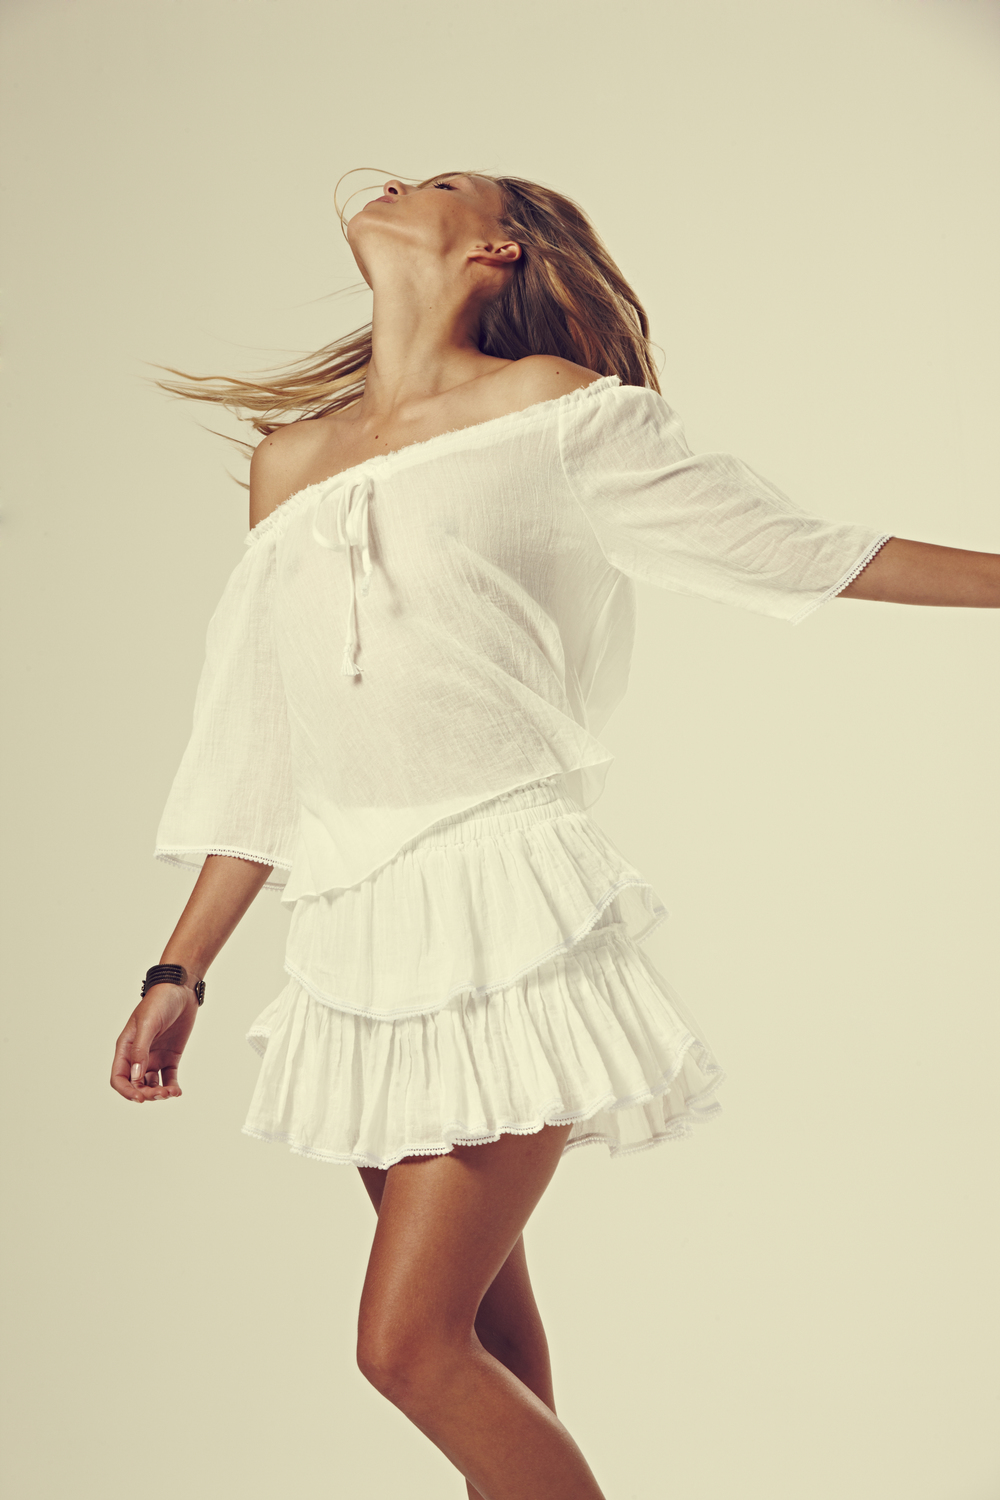 gypsy top and ruffle mini skirt in cotton gauze white.jpg